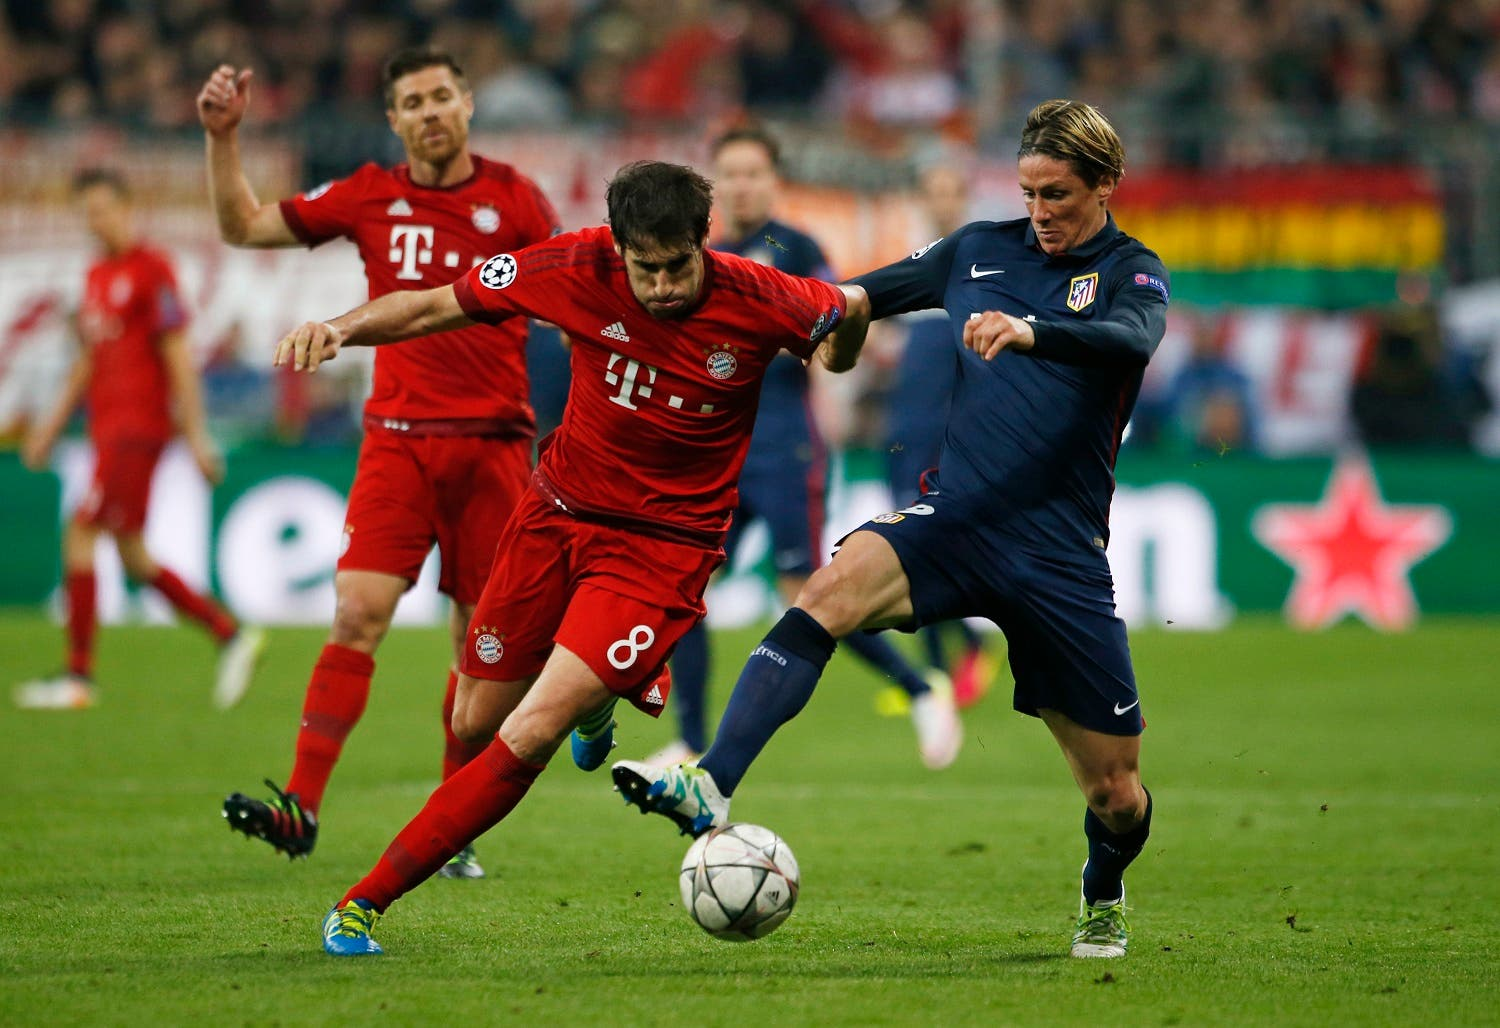 Atletico Madrid's Fernando Torres in action with Bayern Munich's Javi Martinez. (Reuters)